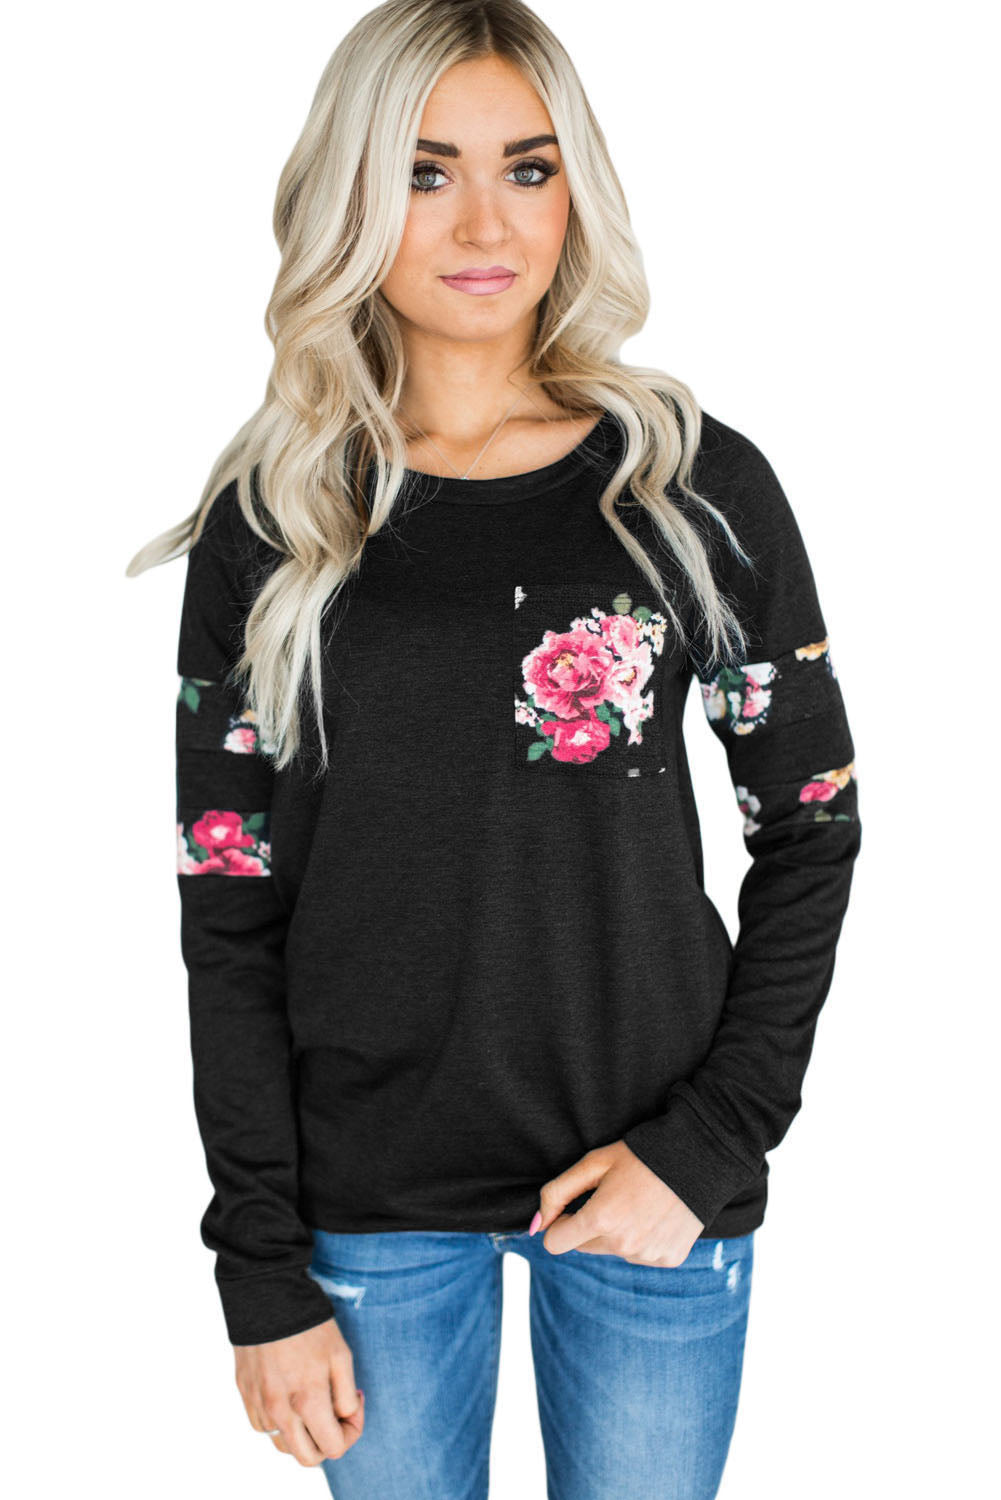 Chicloth Floral Patch Accent Black Sweatshirt - M / Black